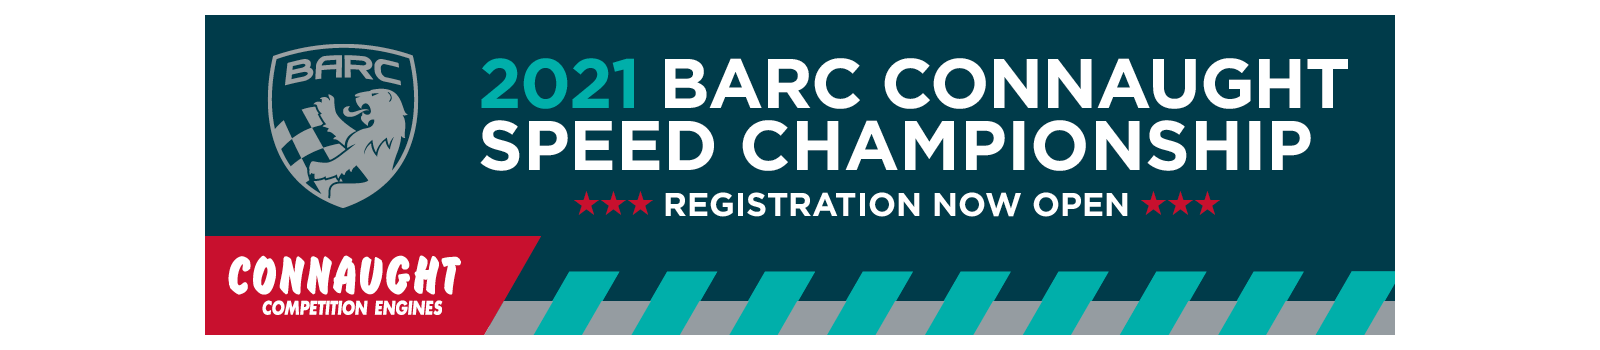 2021 BARC Connaught Speed Championship Registration Now Open